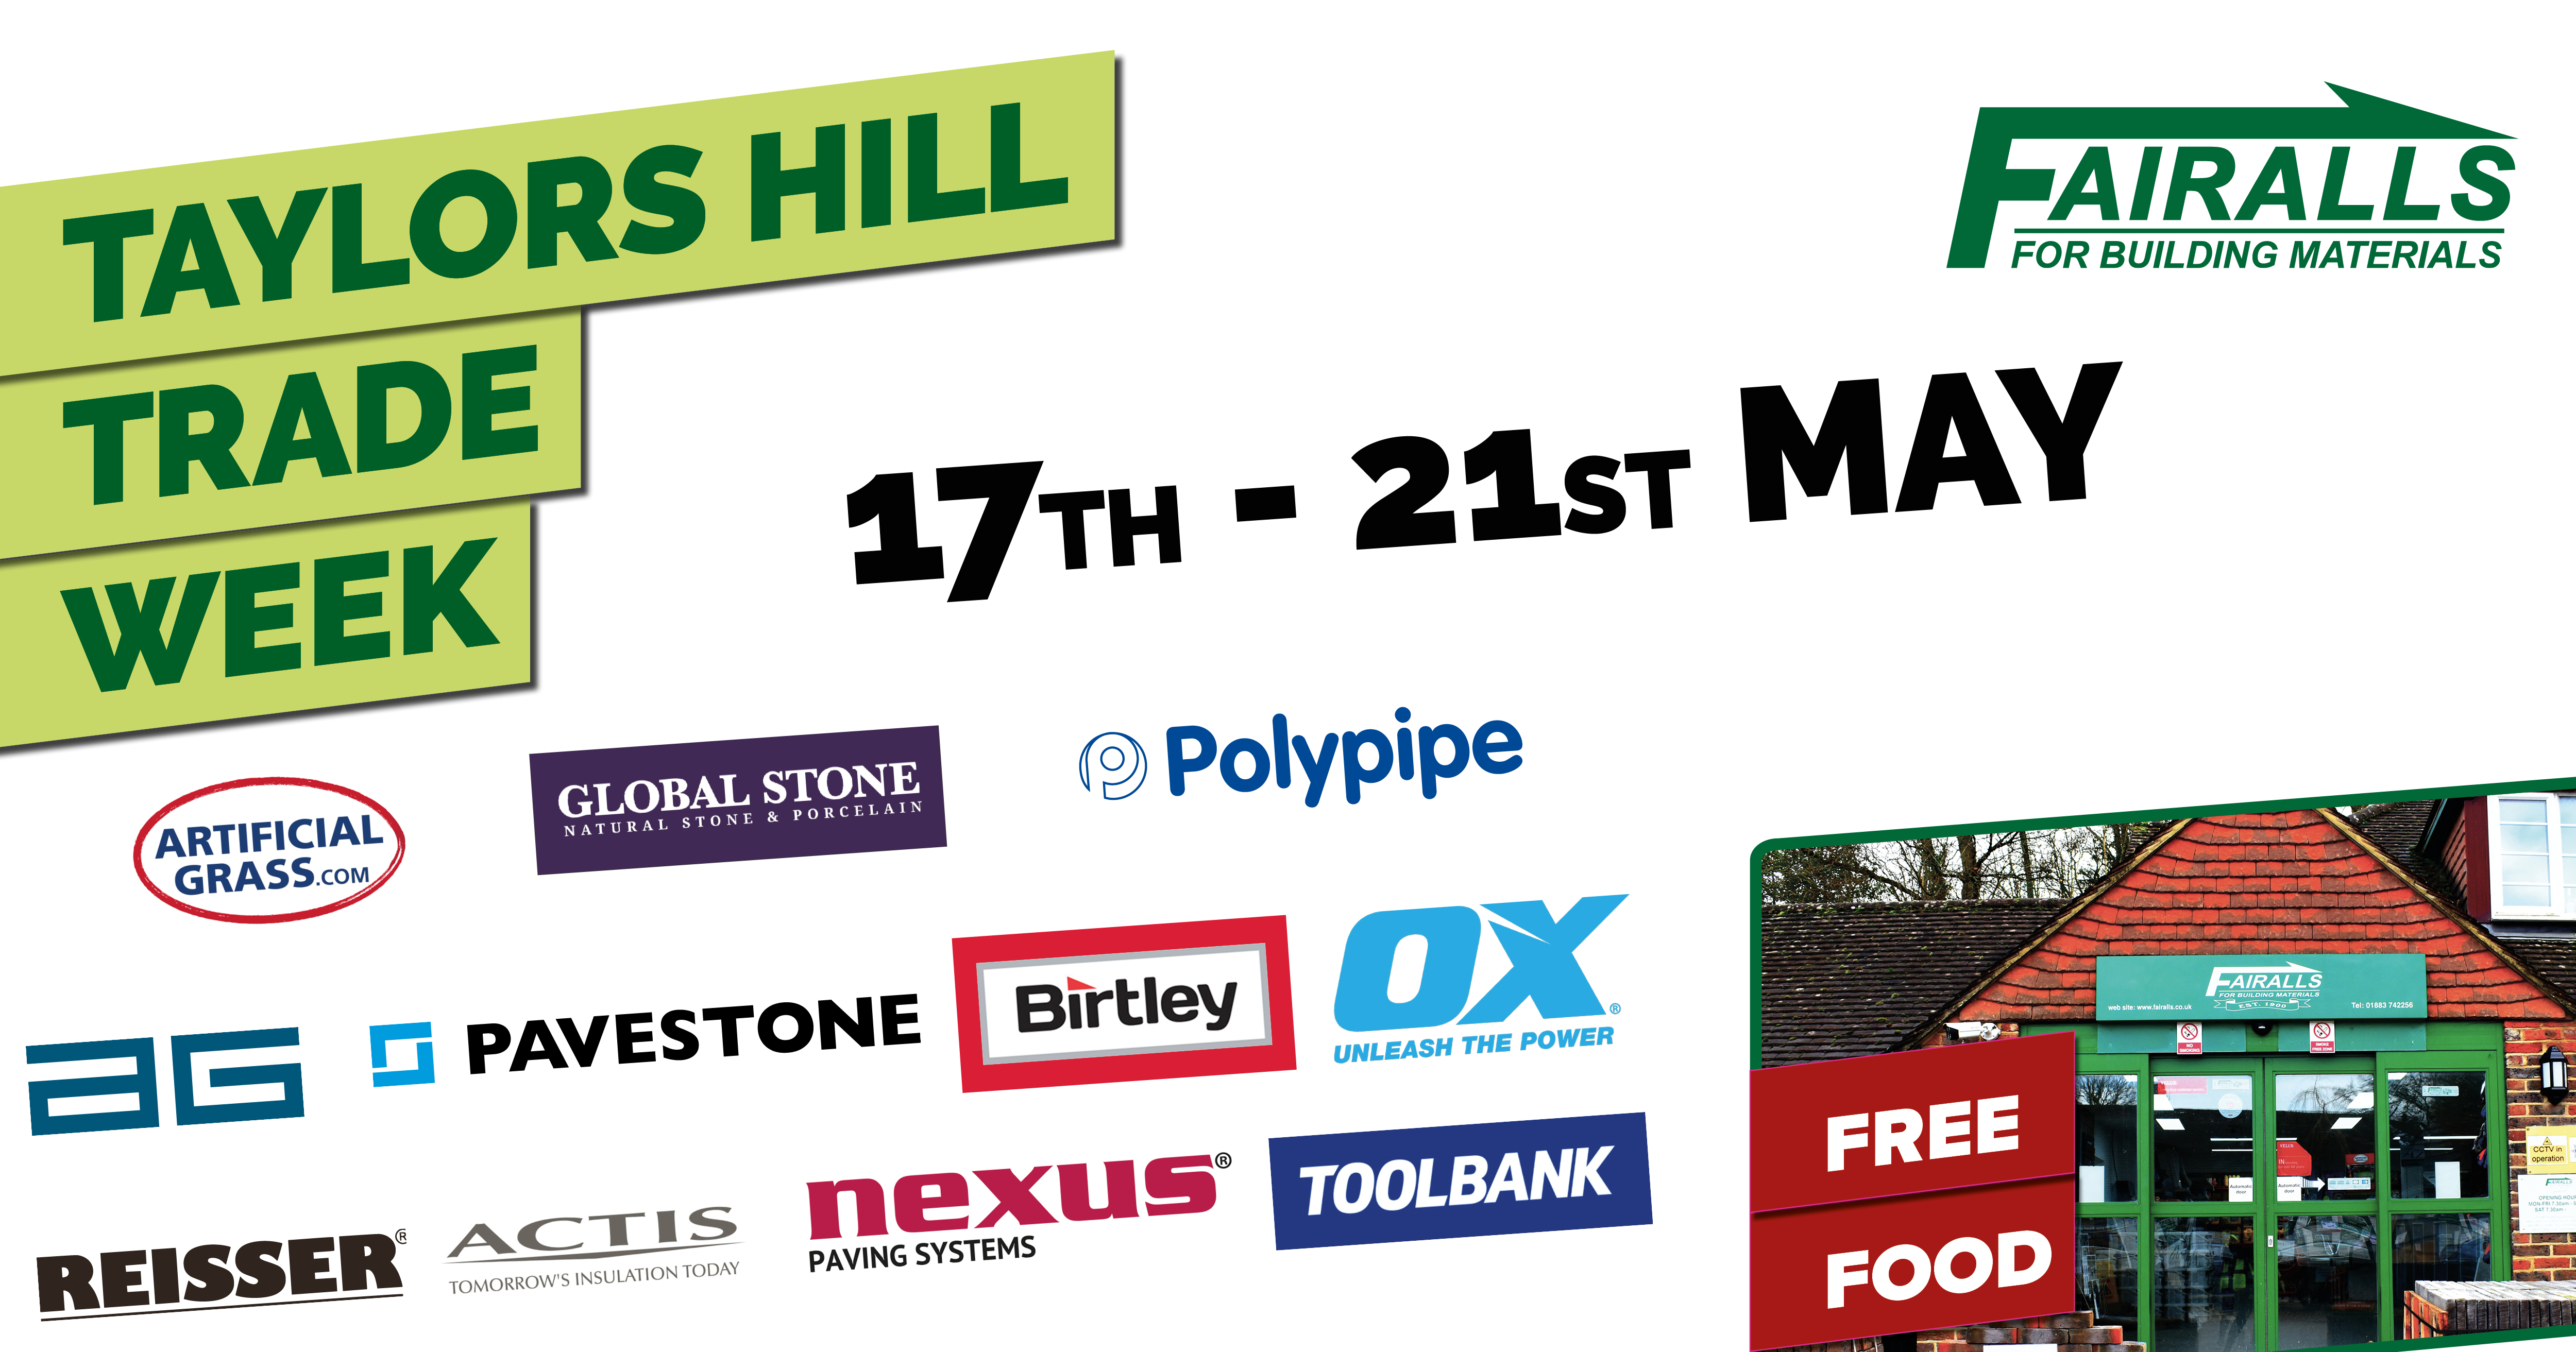 Taylors Hill Trade Week Announced with Free Food on Offer